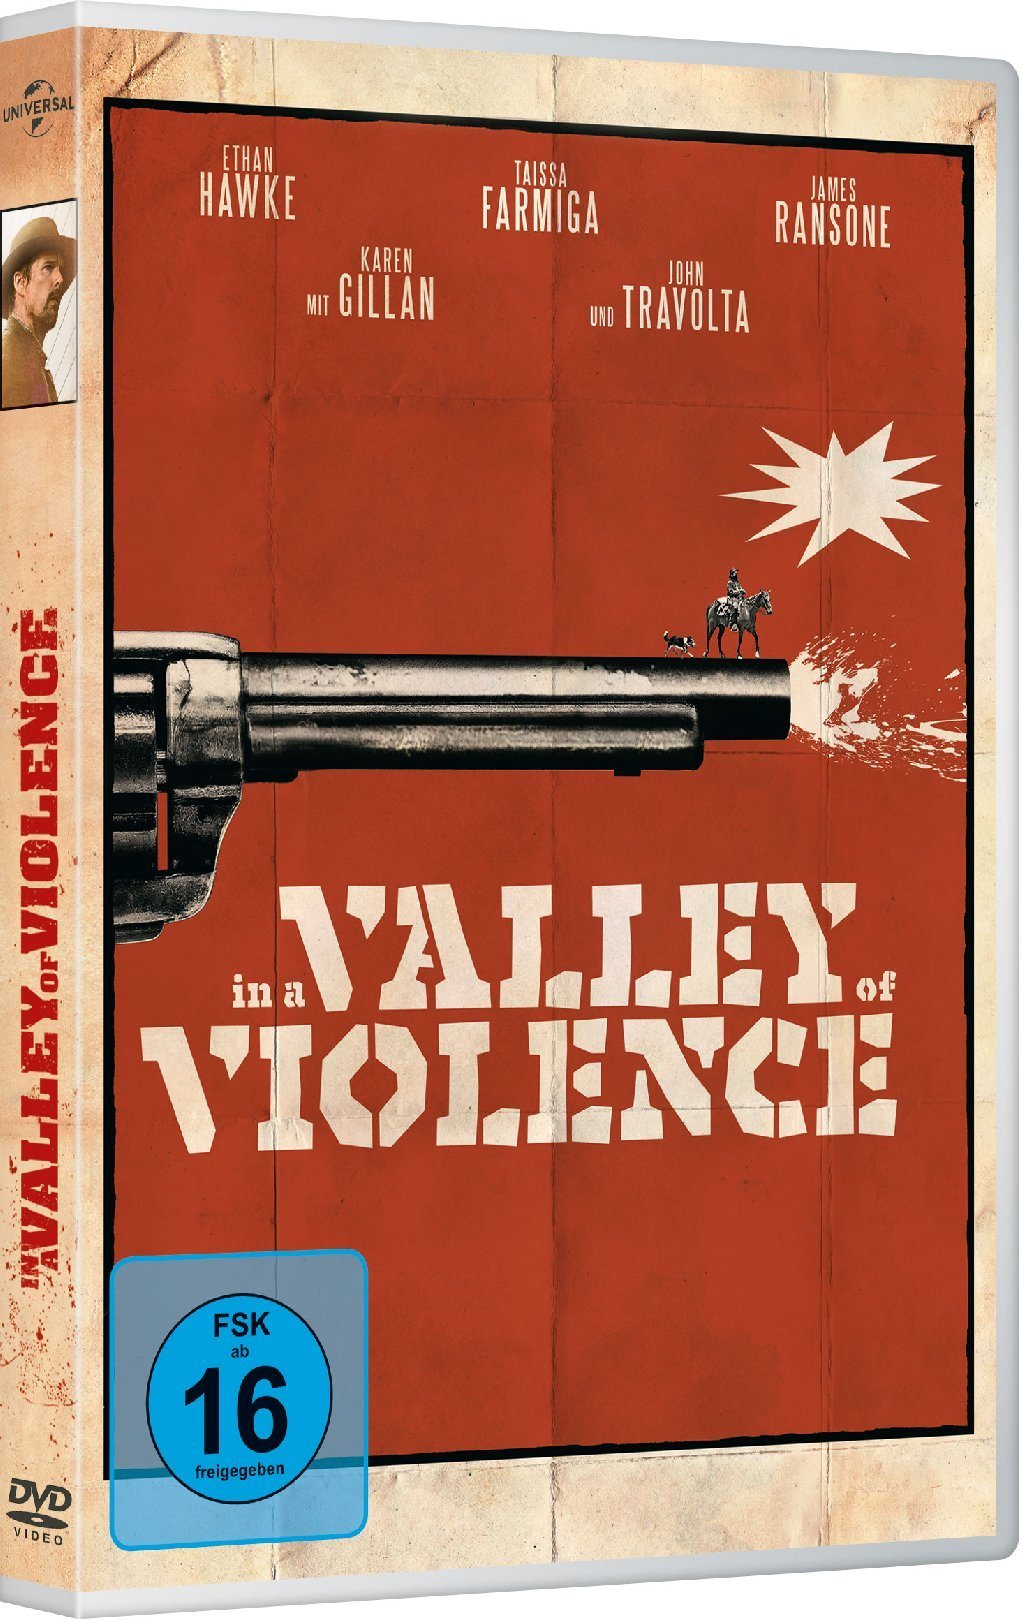 Universal In a Valley of Violence »DVD«